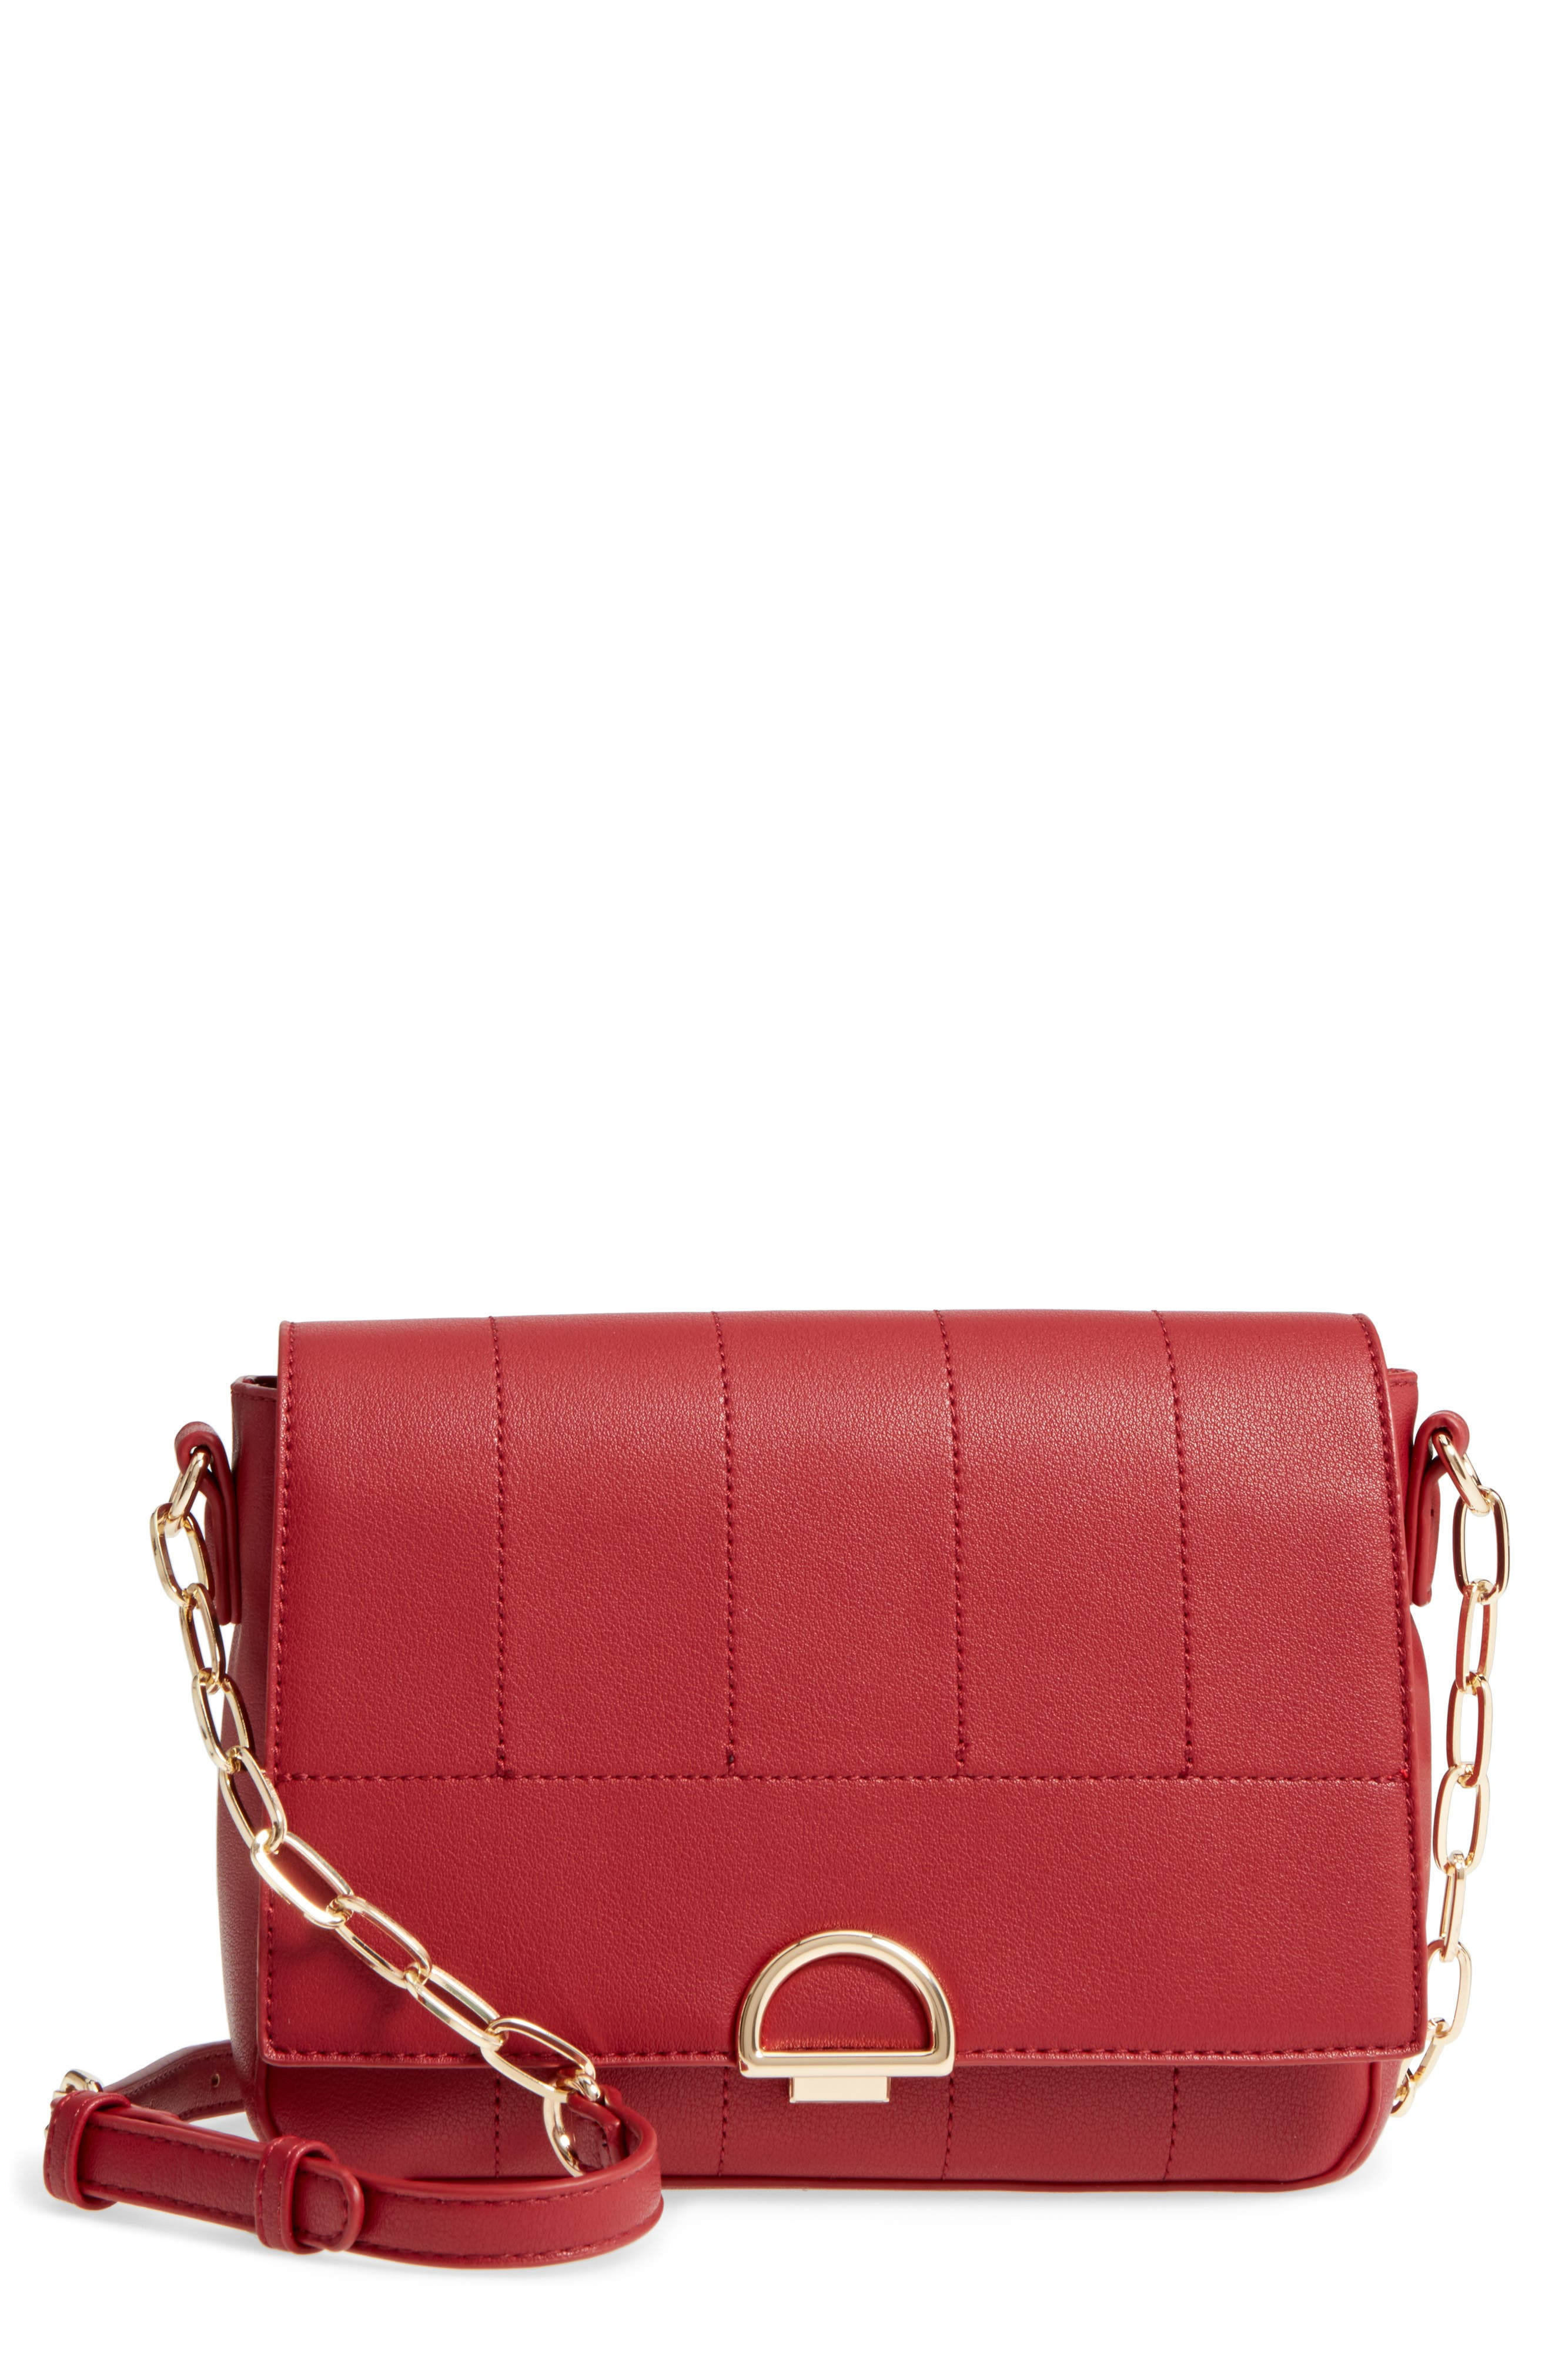 Colie Faux Leather Crossbody Bag,                         Main,                         color, Cherry Red